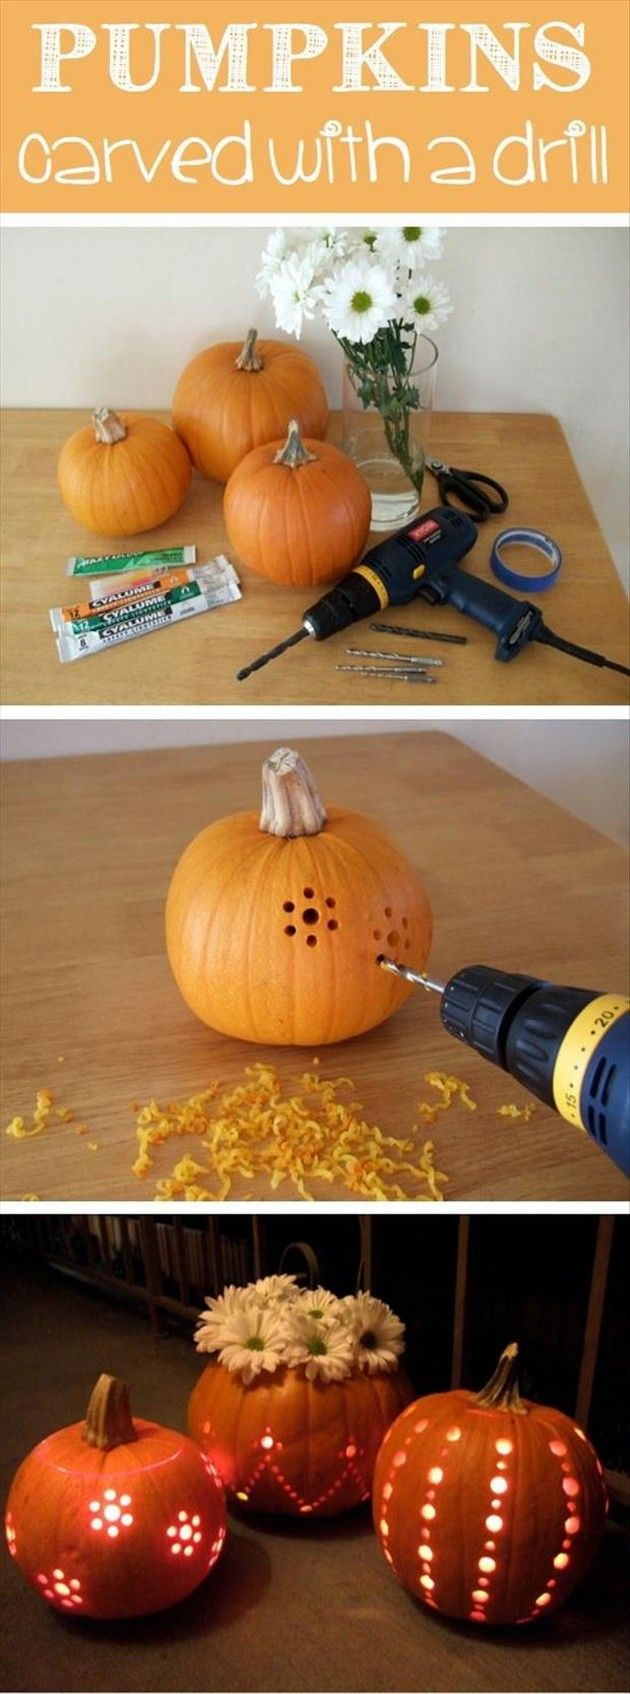 Cool Craft DIY Ideas - Pumpkins